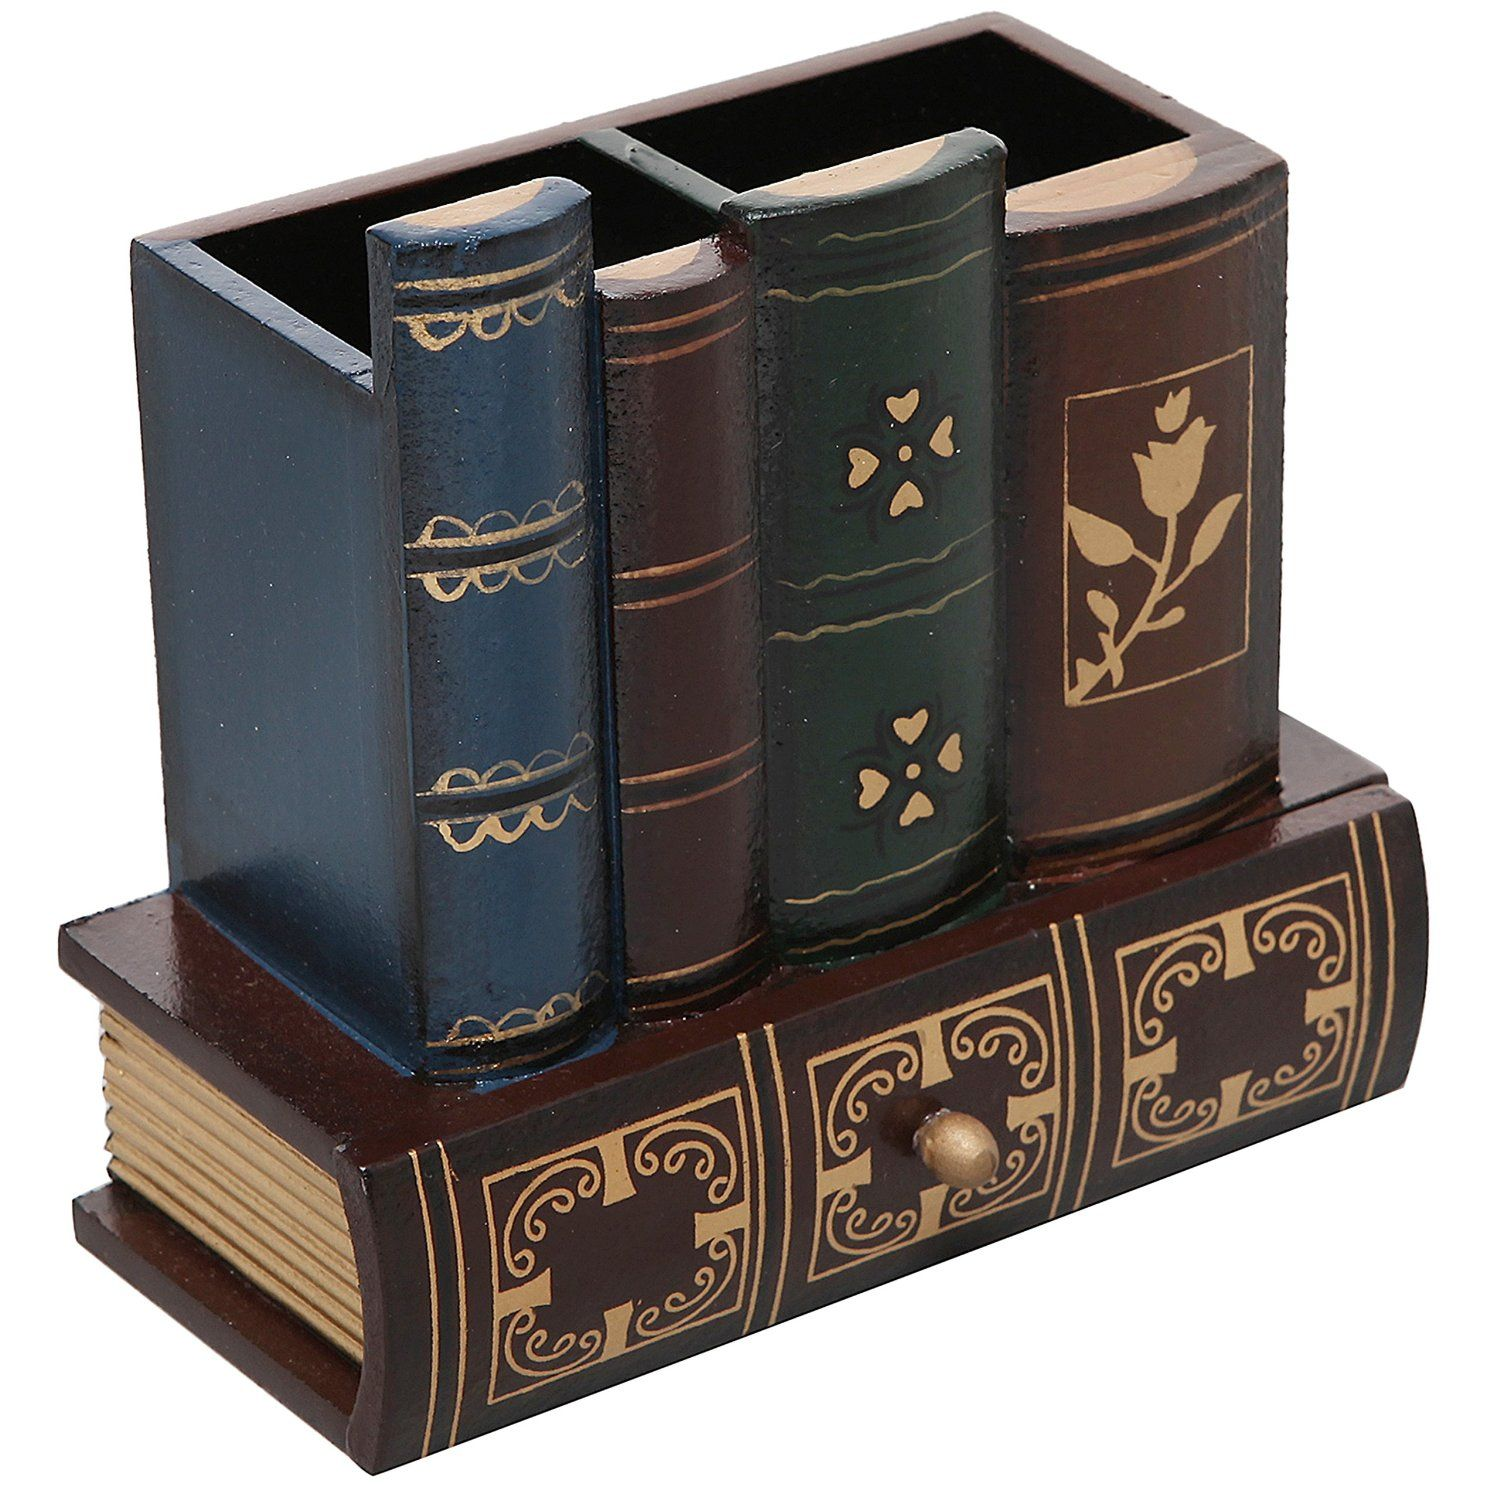 decorative office supplies. Amazon.com : Decorative Library Books Design Wooden Office Supply Caddy Pencil Holder Organizer With Bottom Drawer Products Supplies